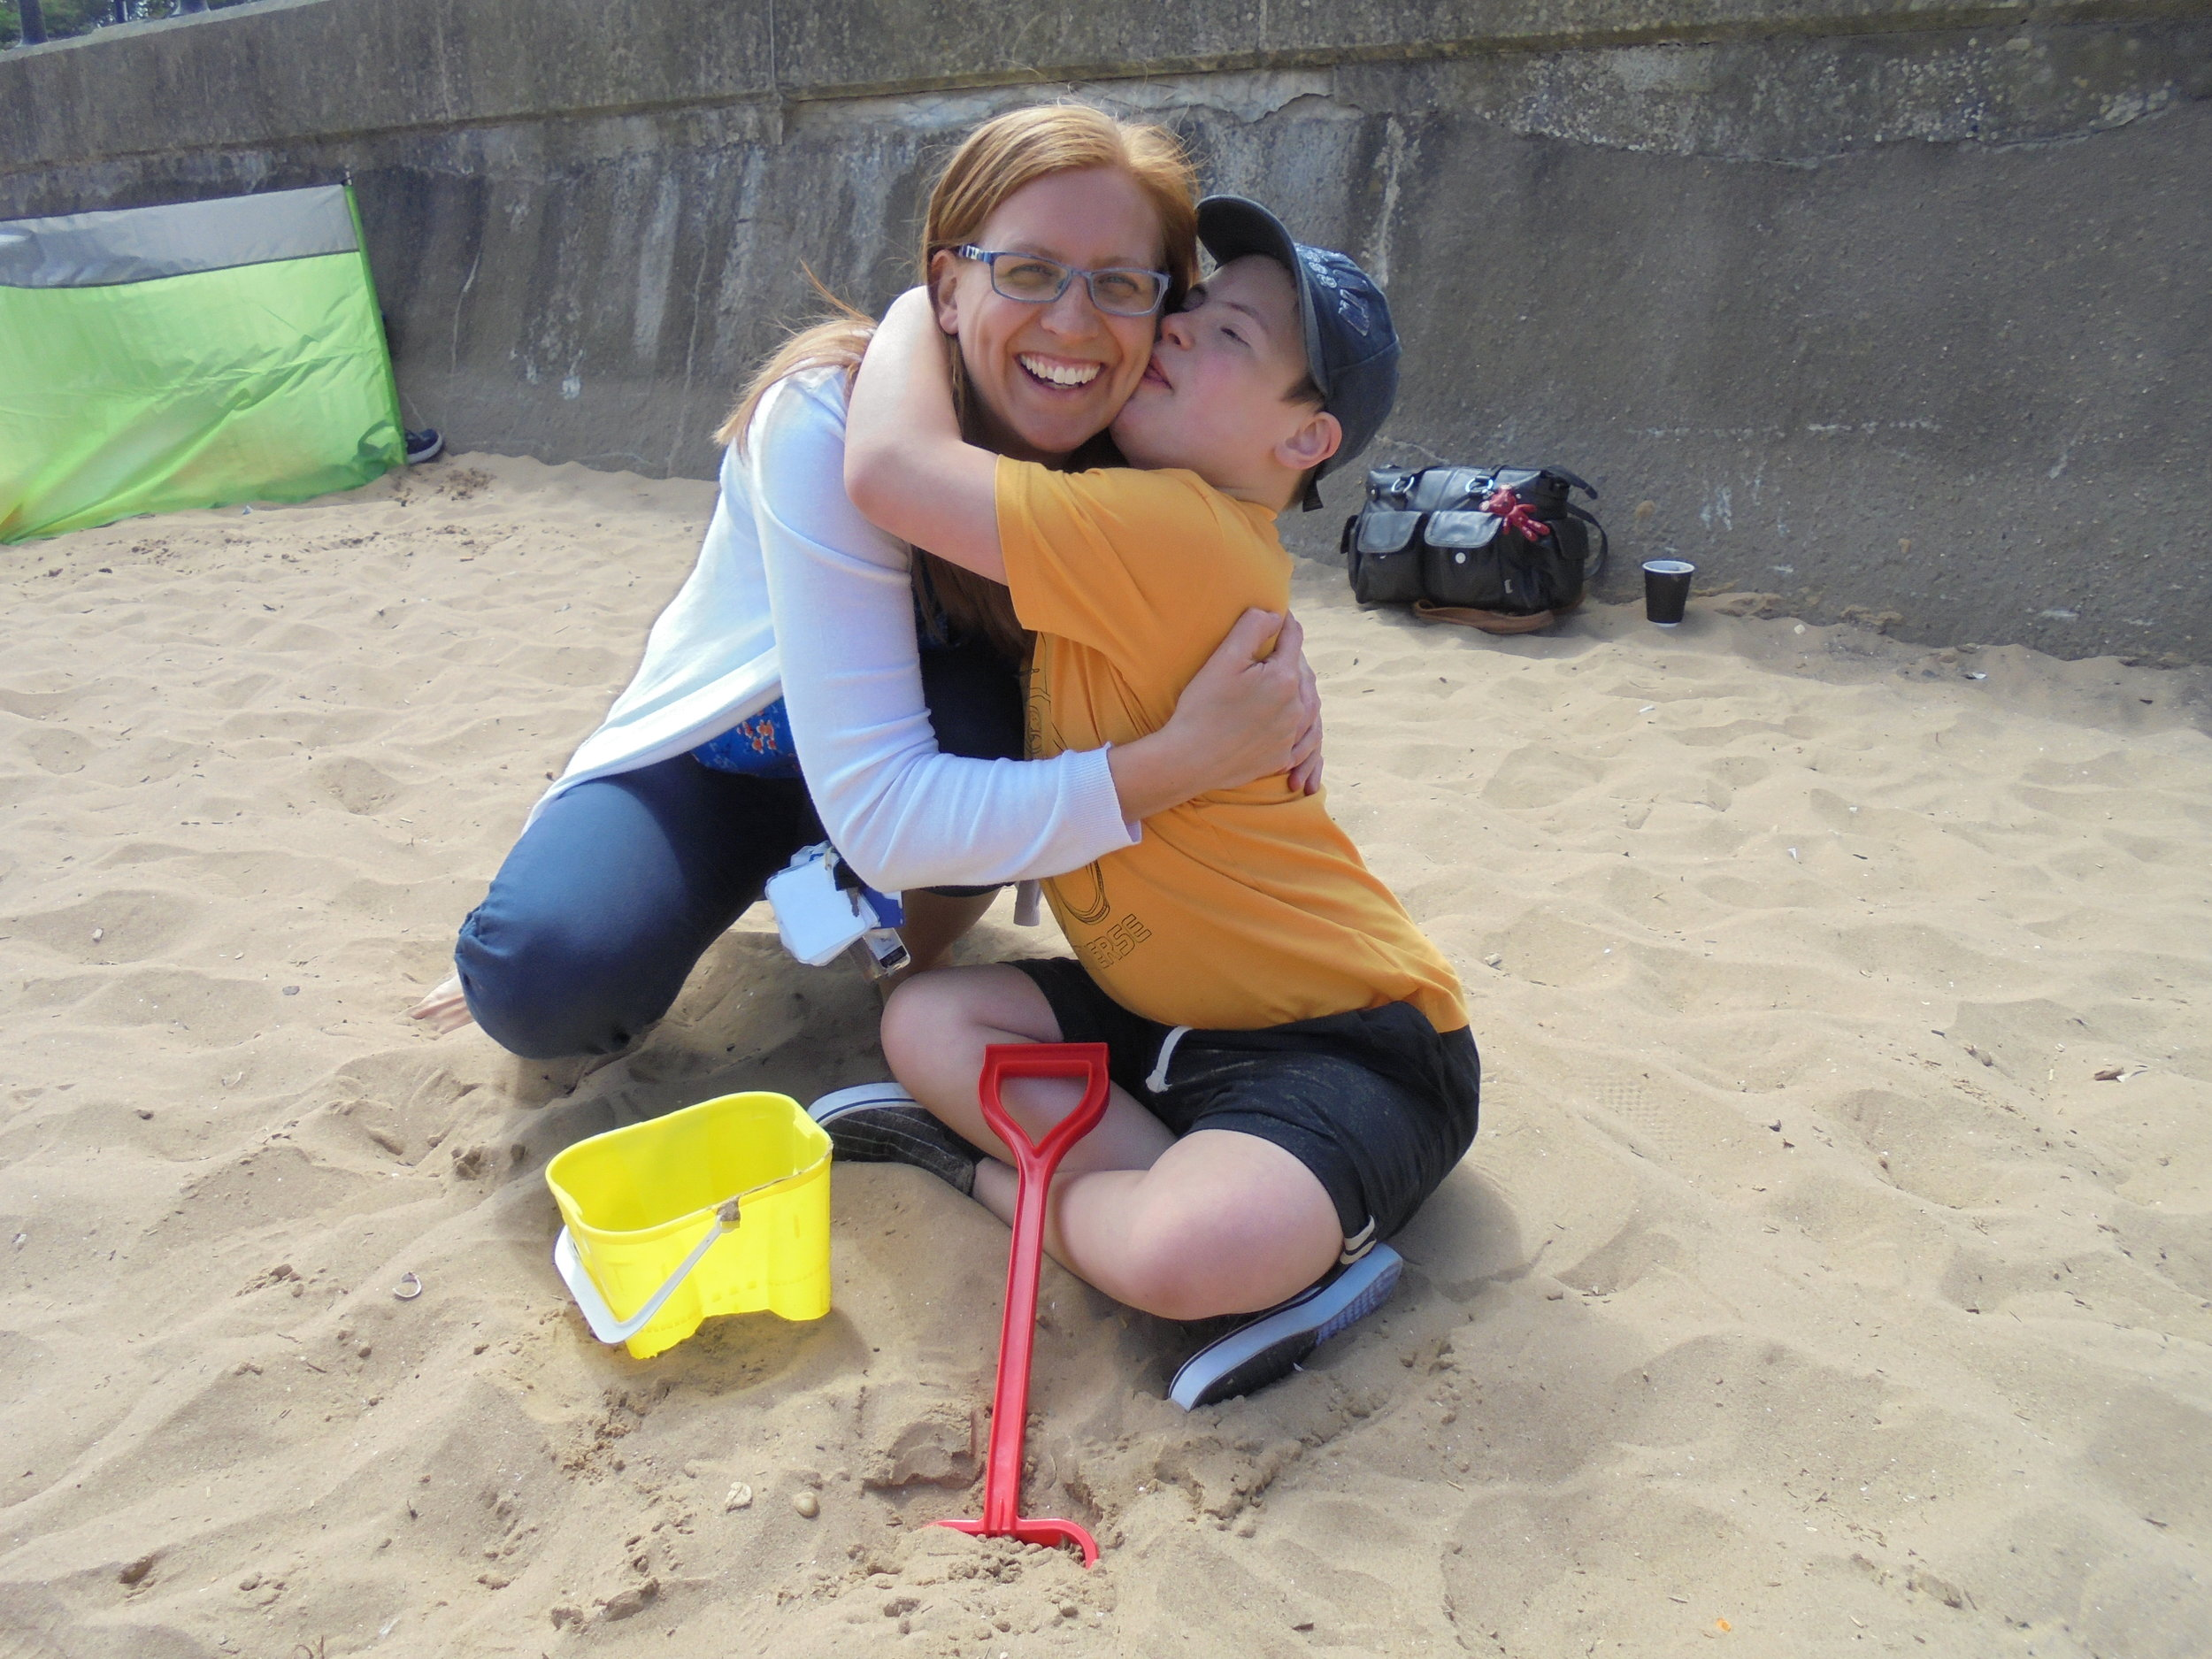 Zoe Everingham is pictured with Ryan Fulcher during a trip to the seaside with St Giles School in Derby. Penguin PR: public relations, media and communications